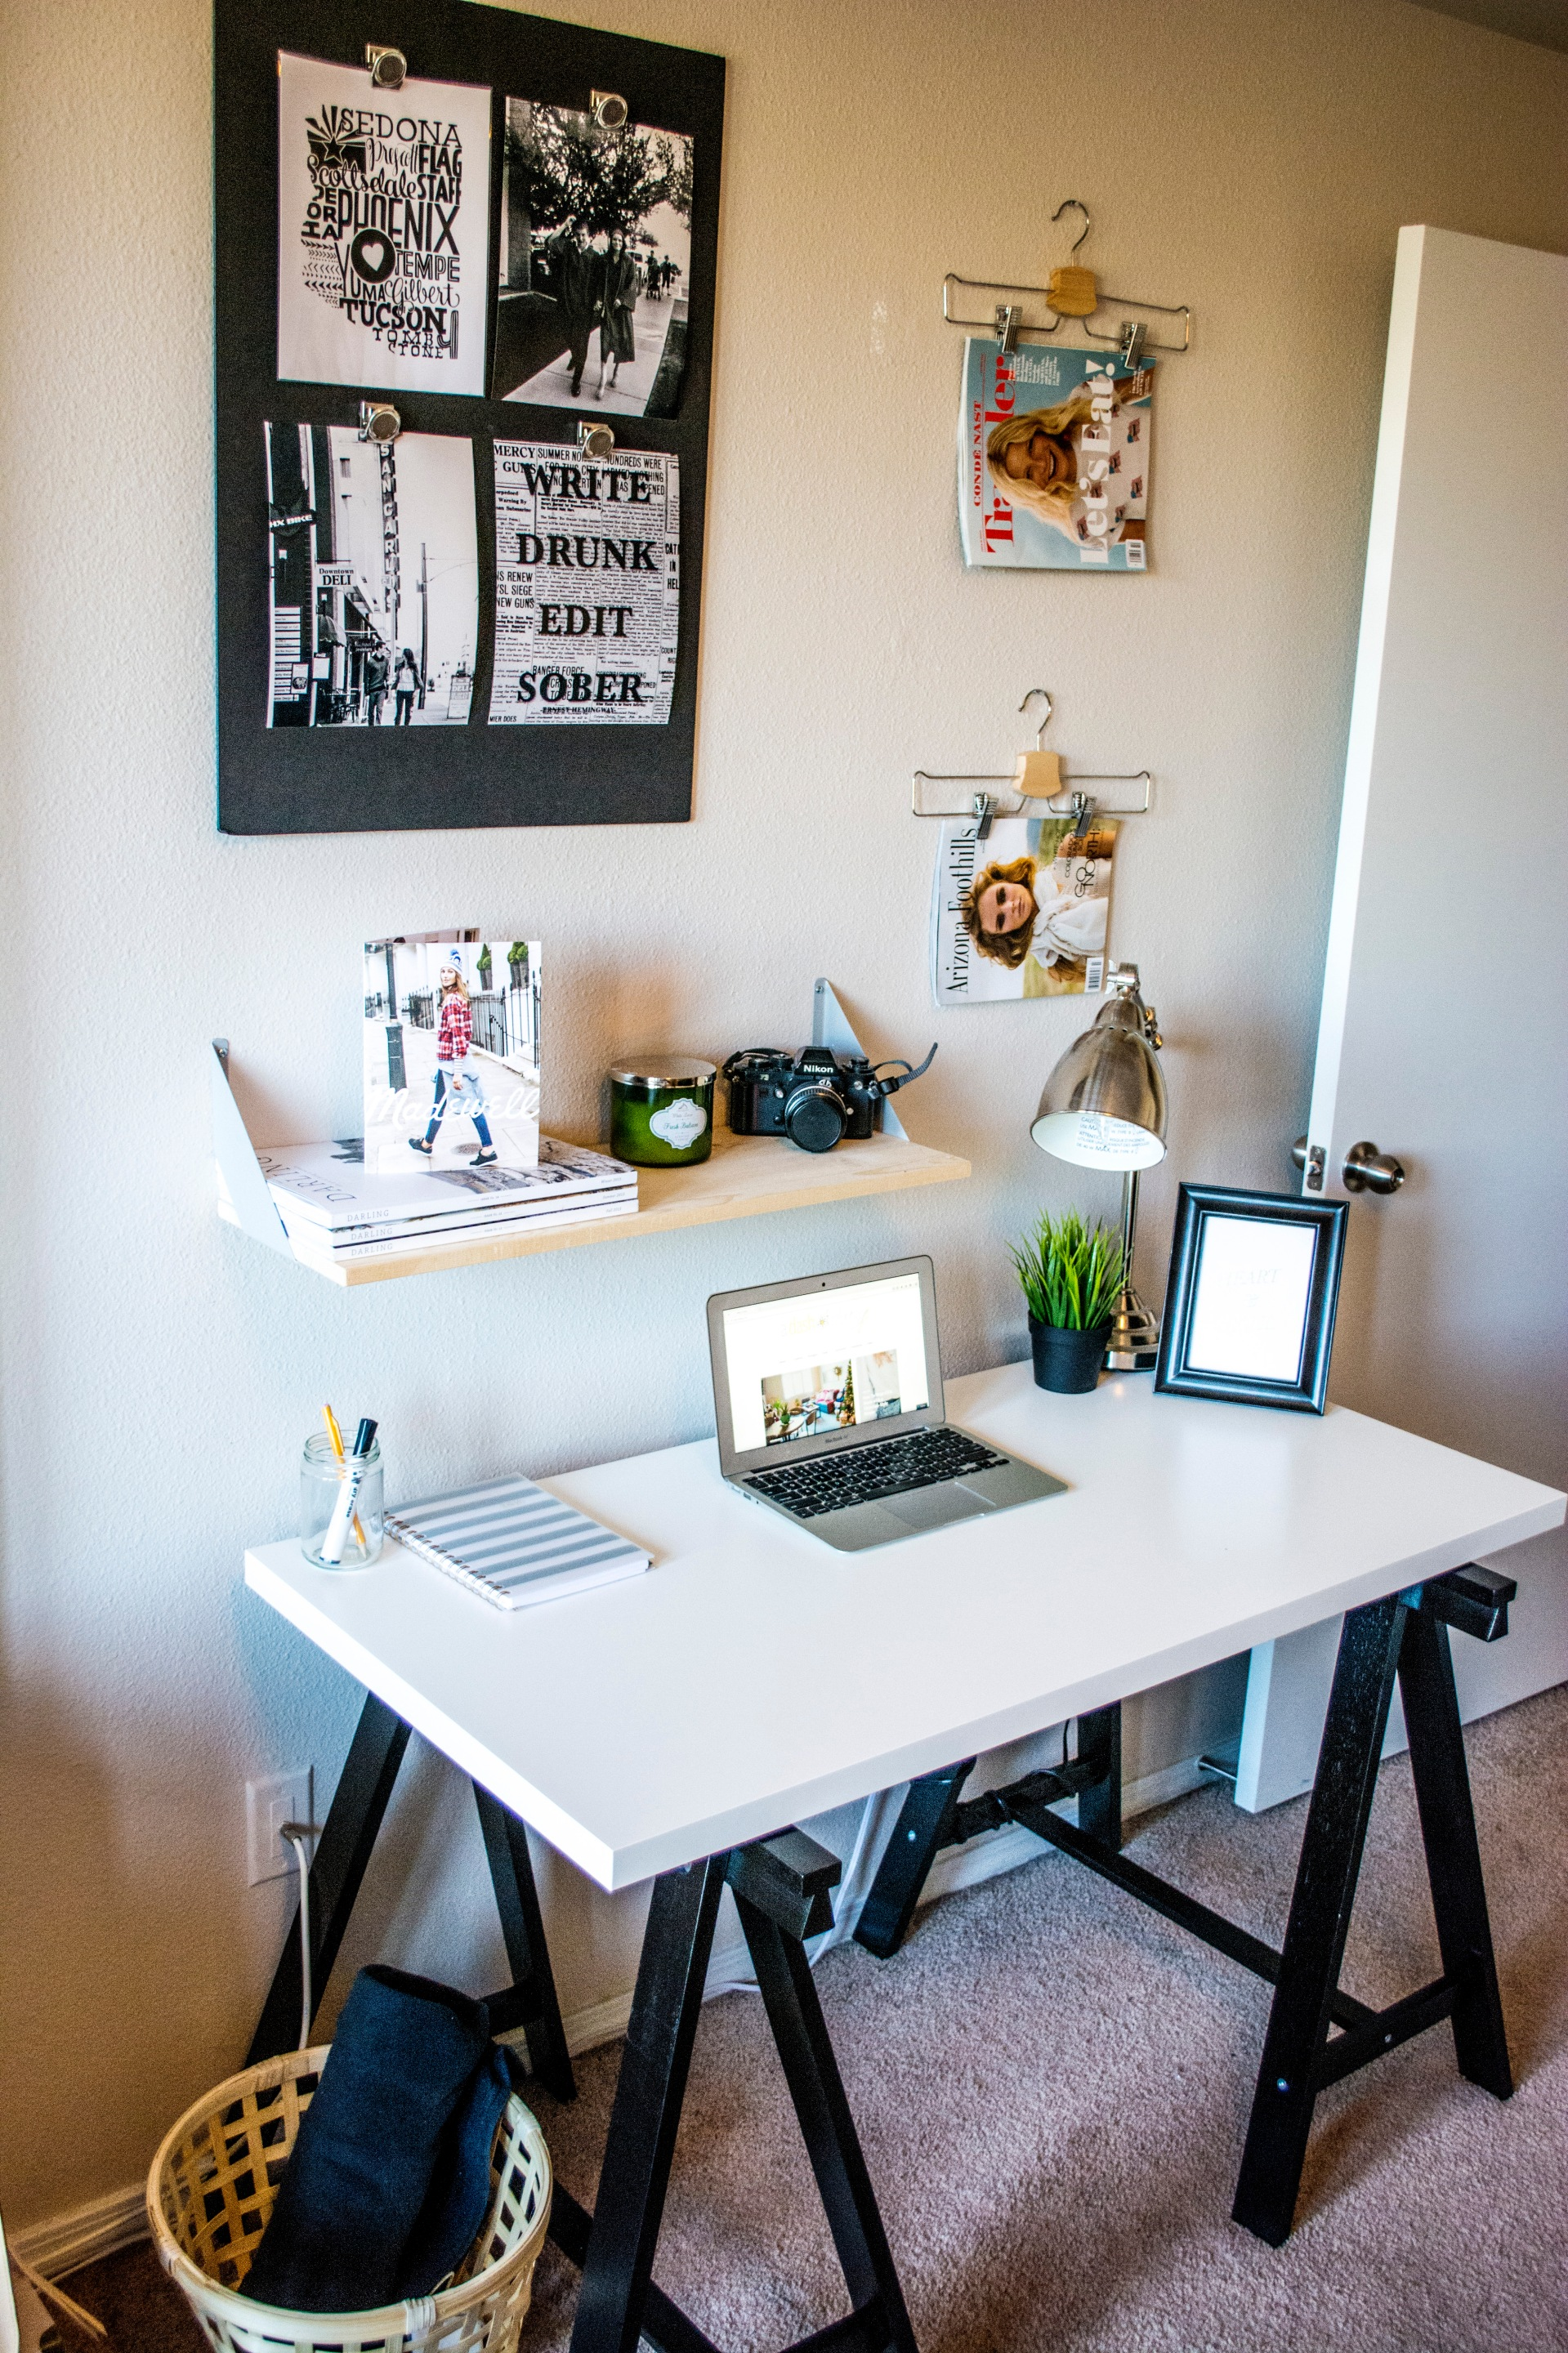 taylor-seely-dash-of-daisy-apartment-desk-decor